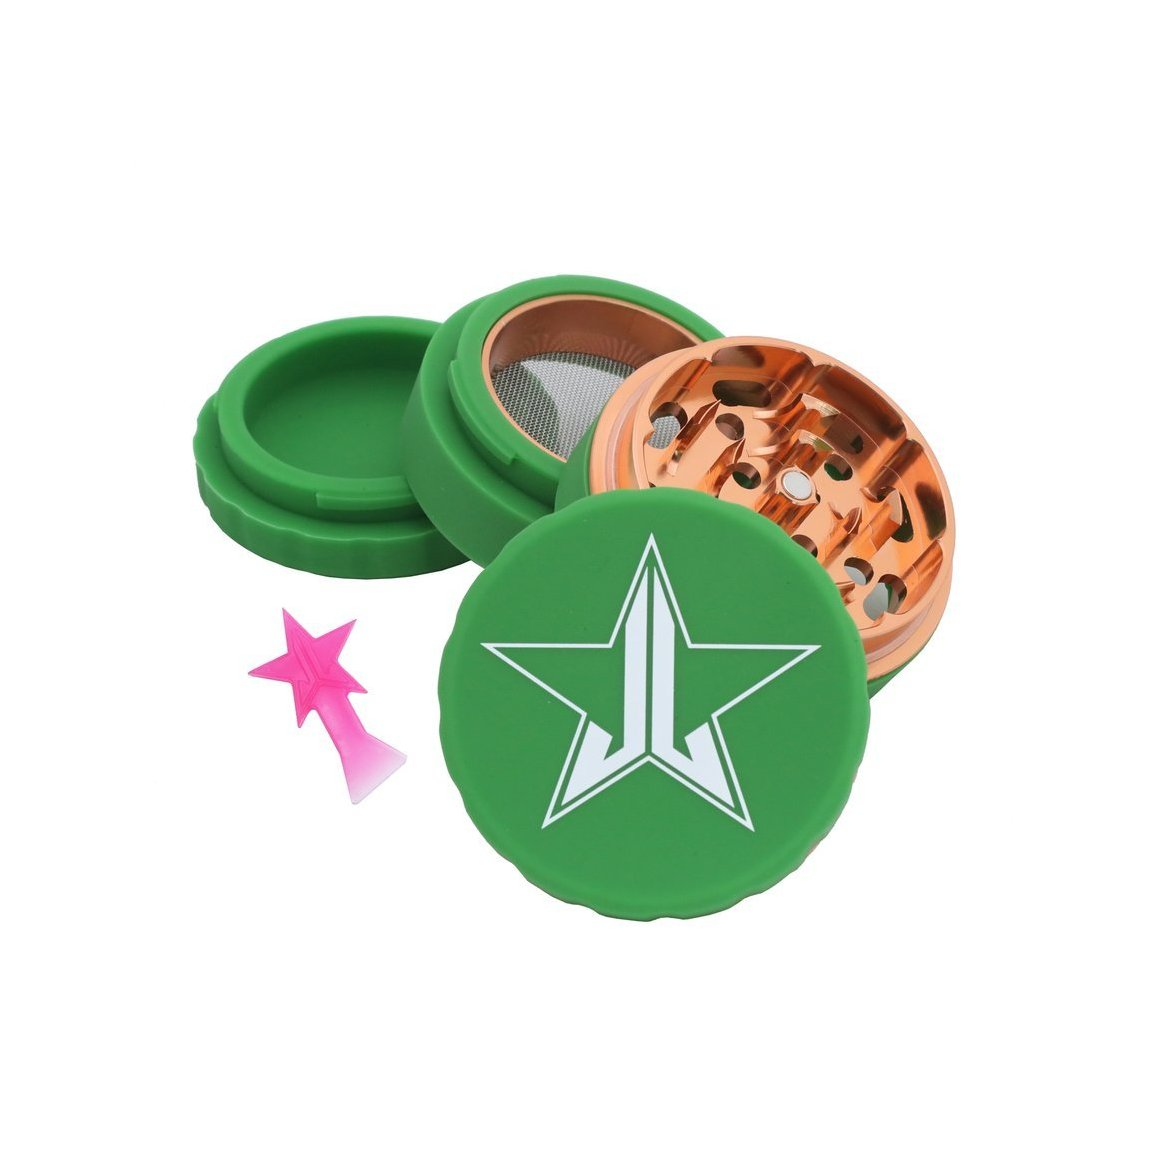 Jeffree Star Cosmetics 63mm Grinder Soft Touch Green product swatch.